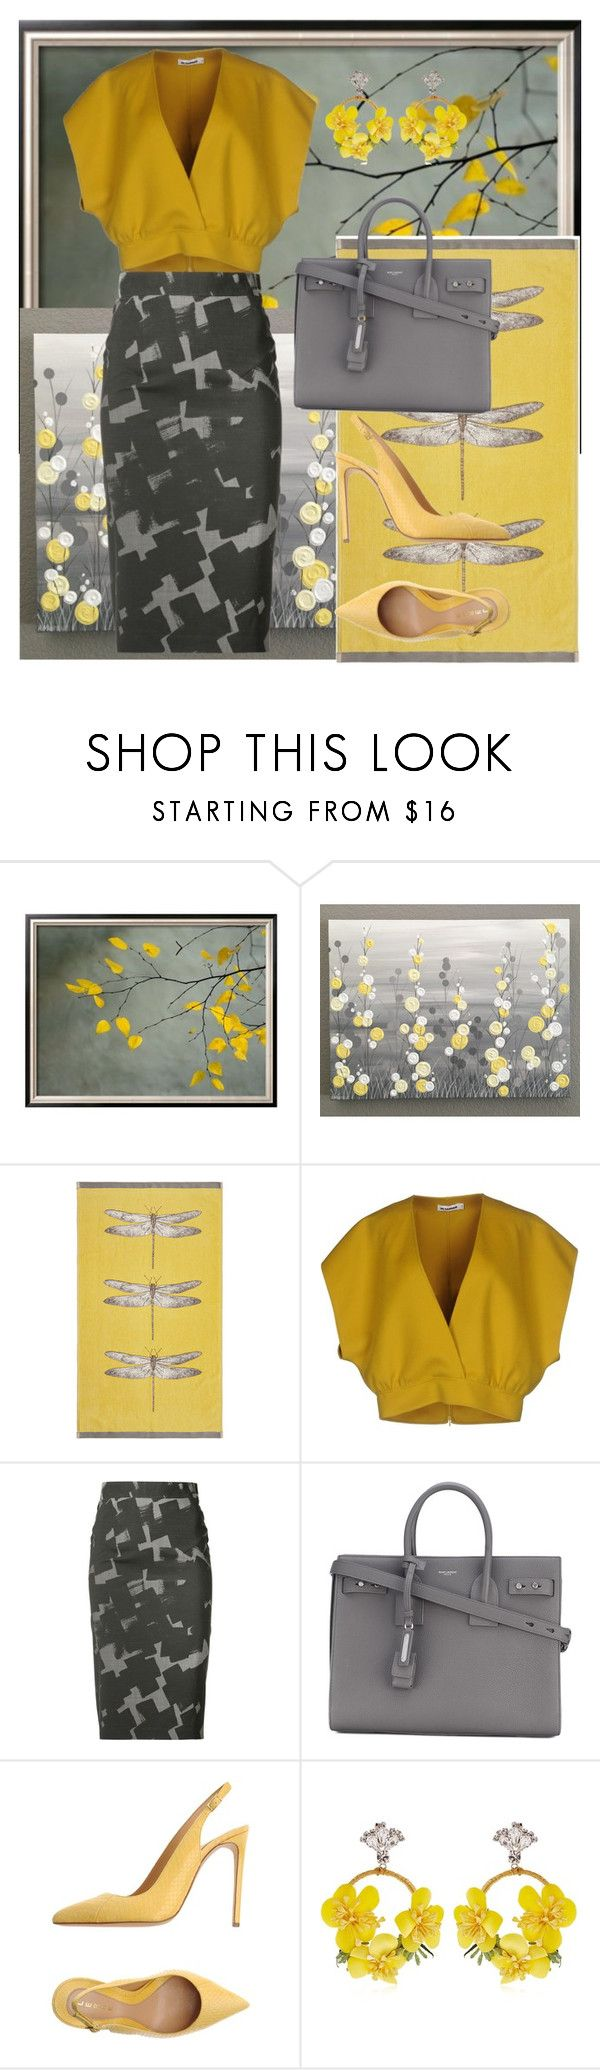 """When Mr. Grey meet Ms. Yellow"" by ayiarundhati ❤ liked on Polyvore featuring HARLEQUIN, Jil Sander, Vivienne Westwood Red Label, Yves Saint Laurent, Lerre and VANINA"